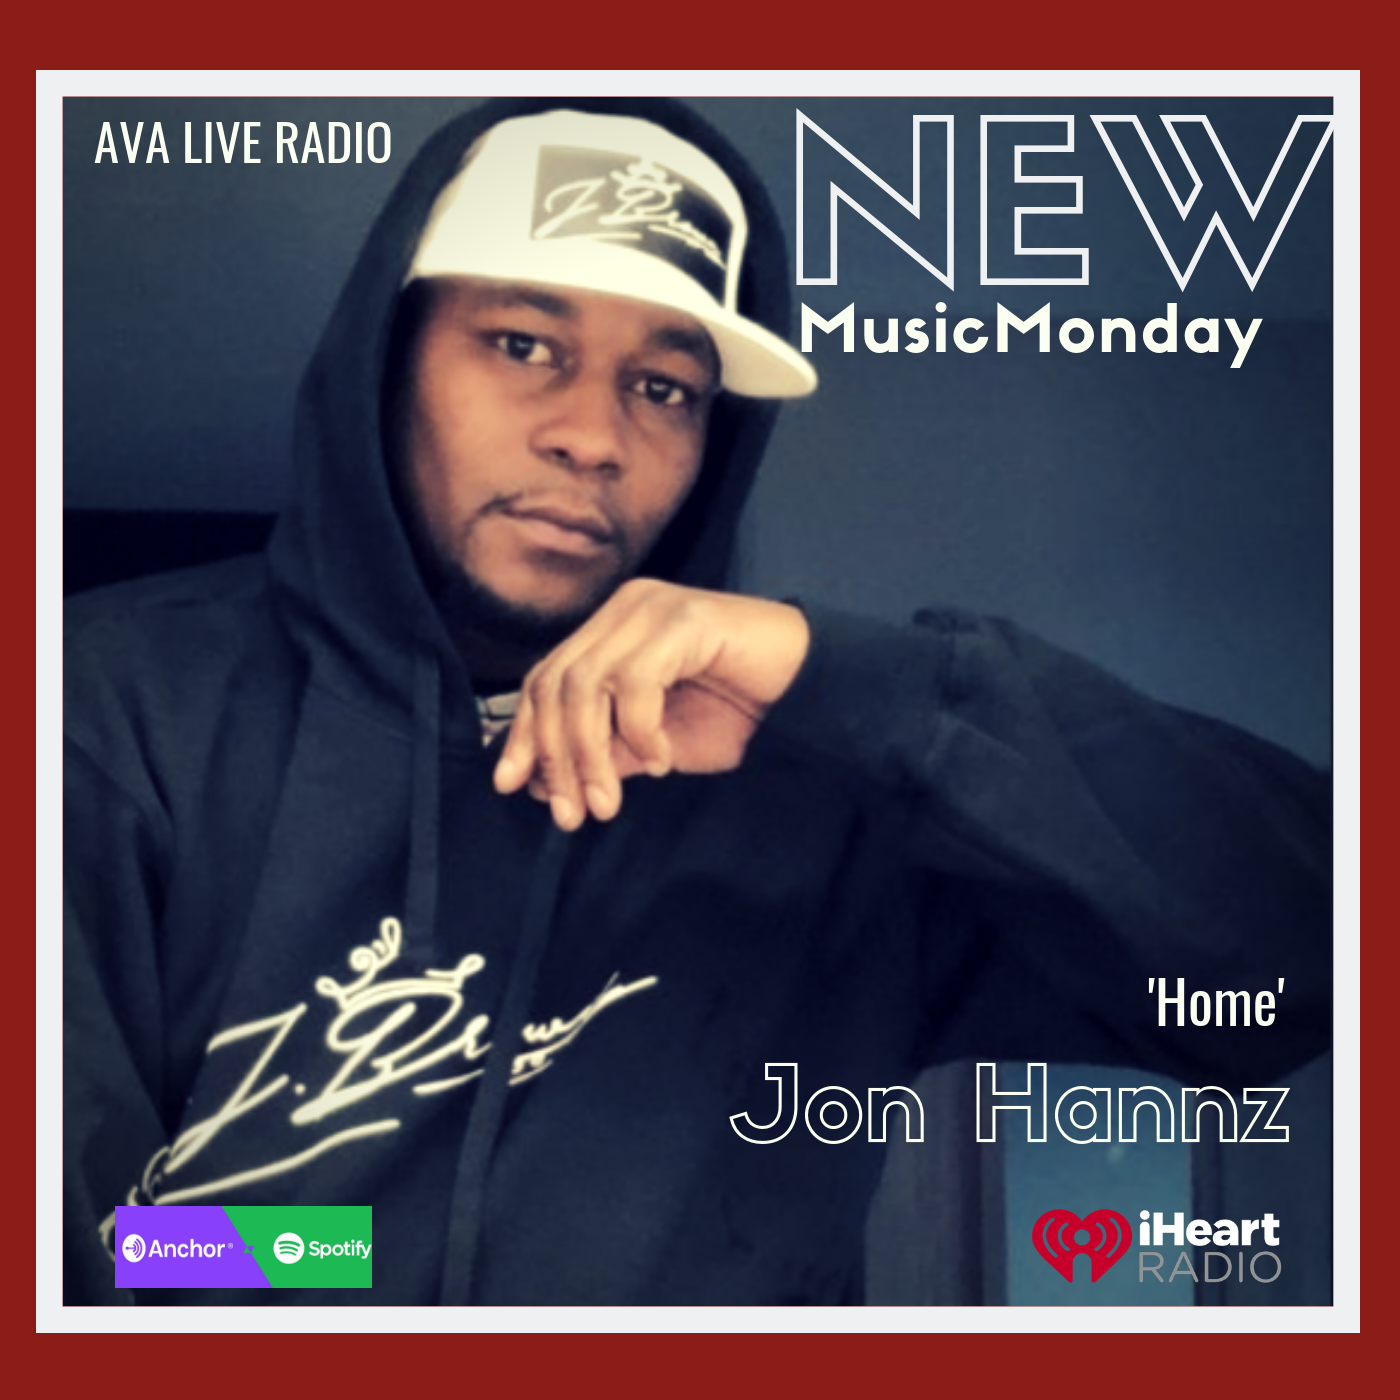 Jon Hannz avaliveradio new music monday.png